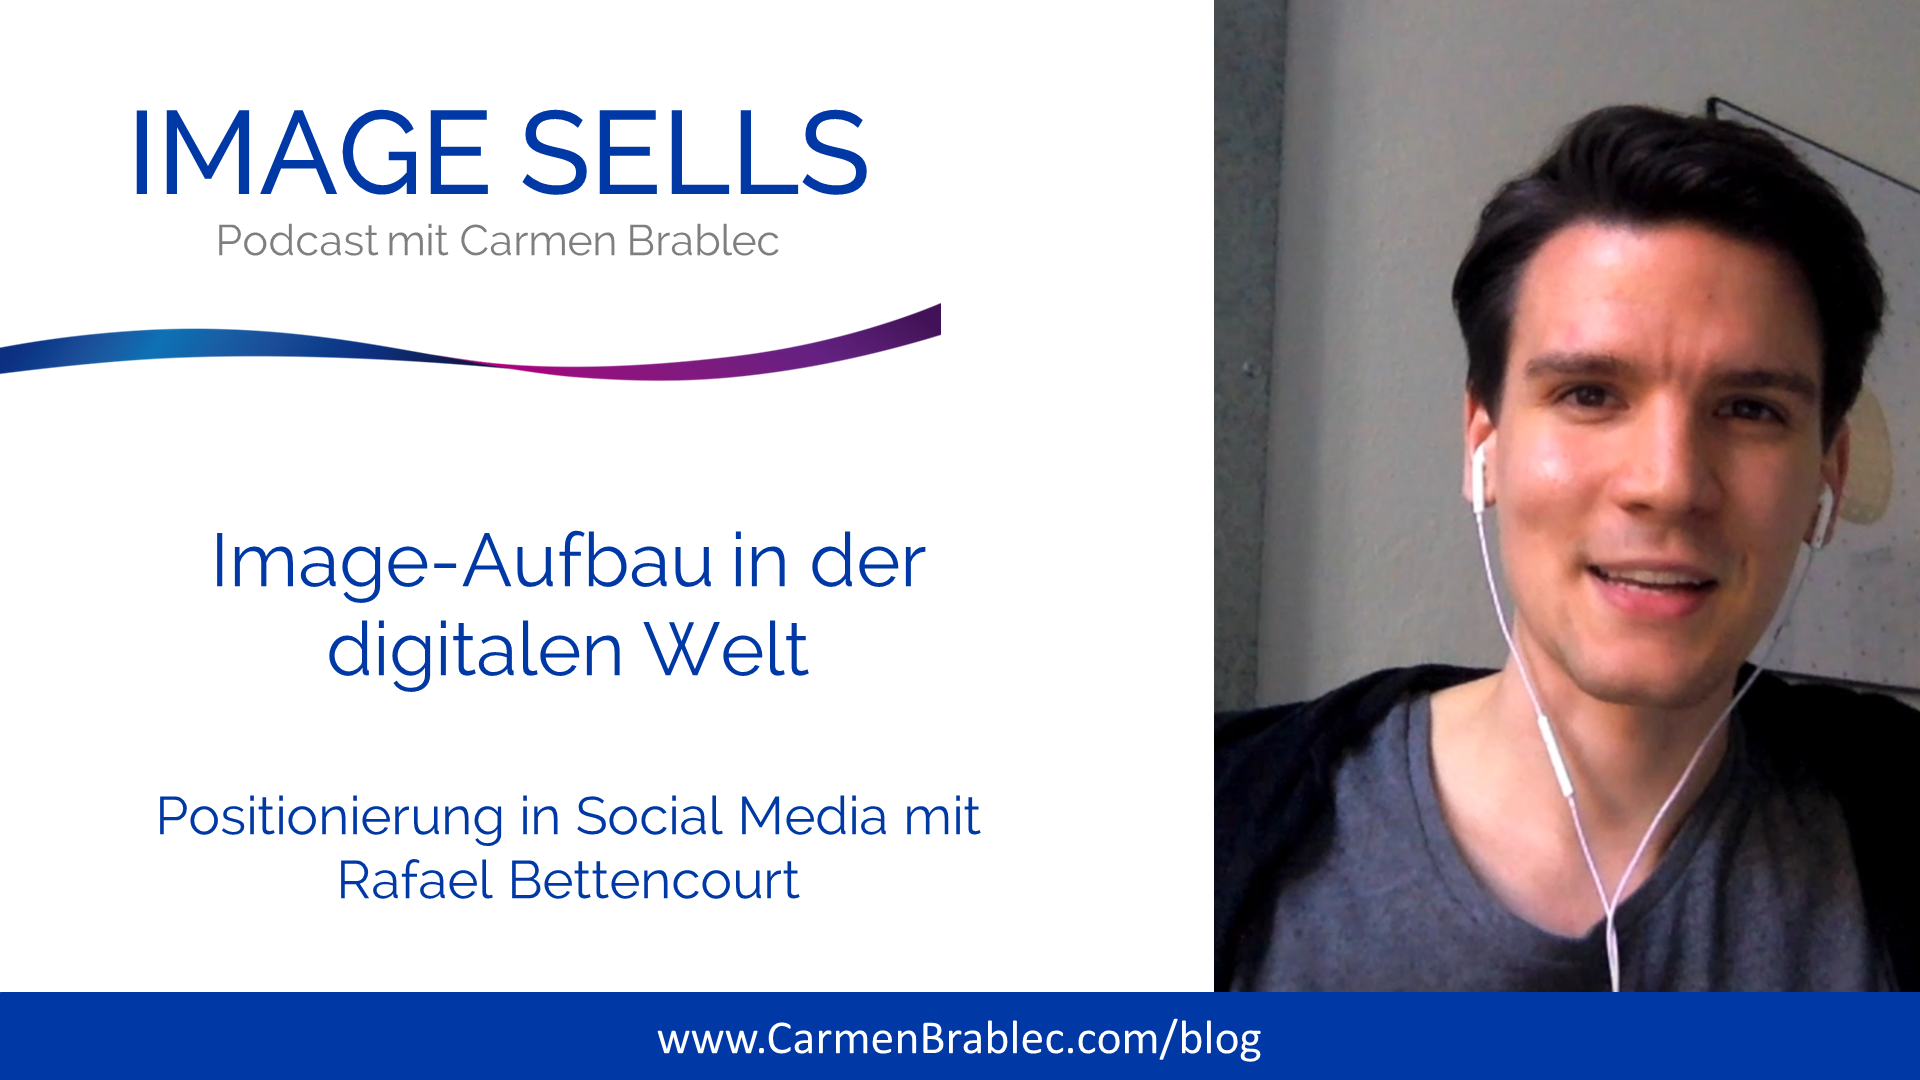 Image-Aufbau in der digitalen Welt mit social-media Experte Rafael Bettencourt – ISP #041